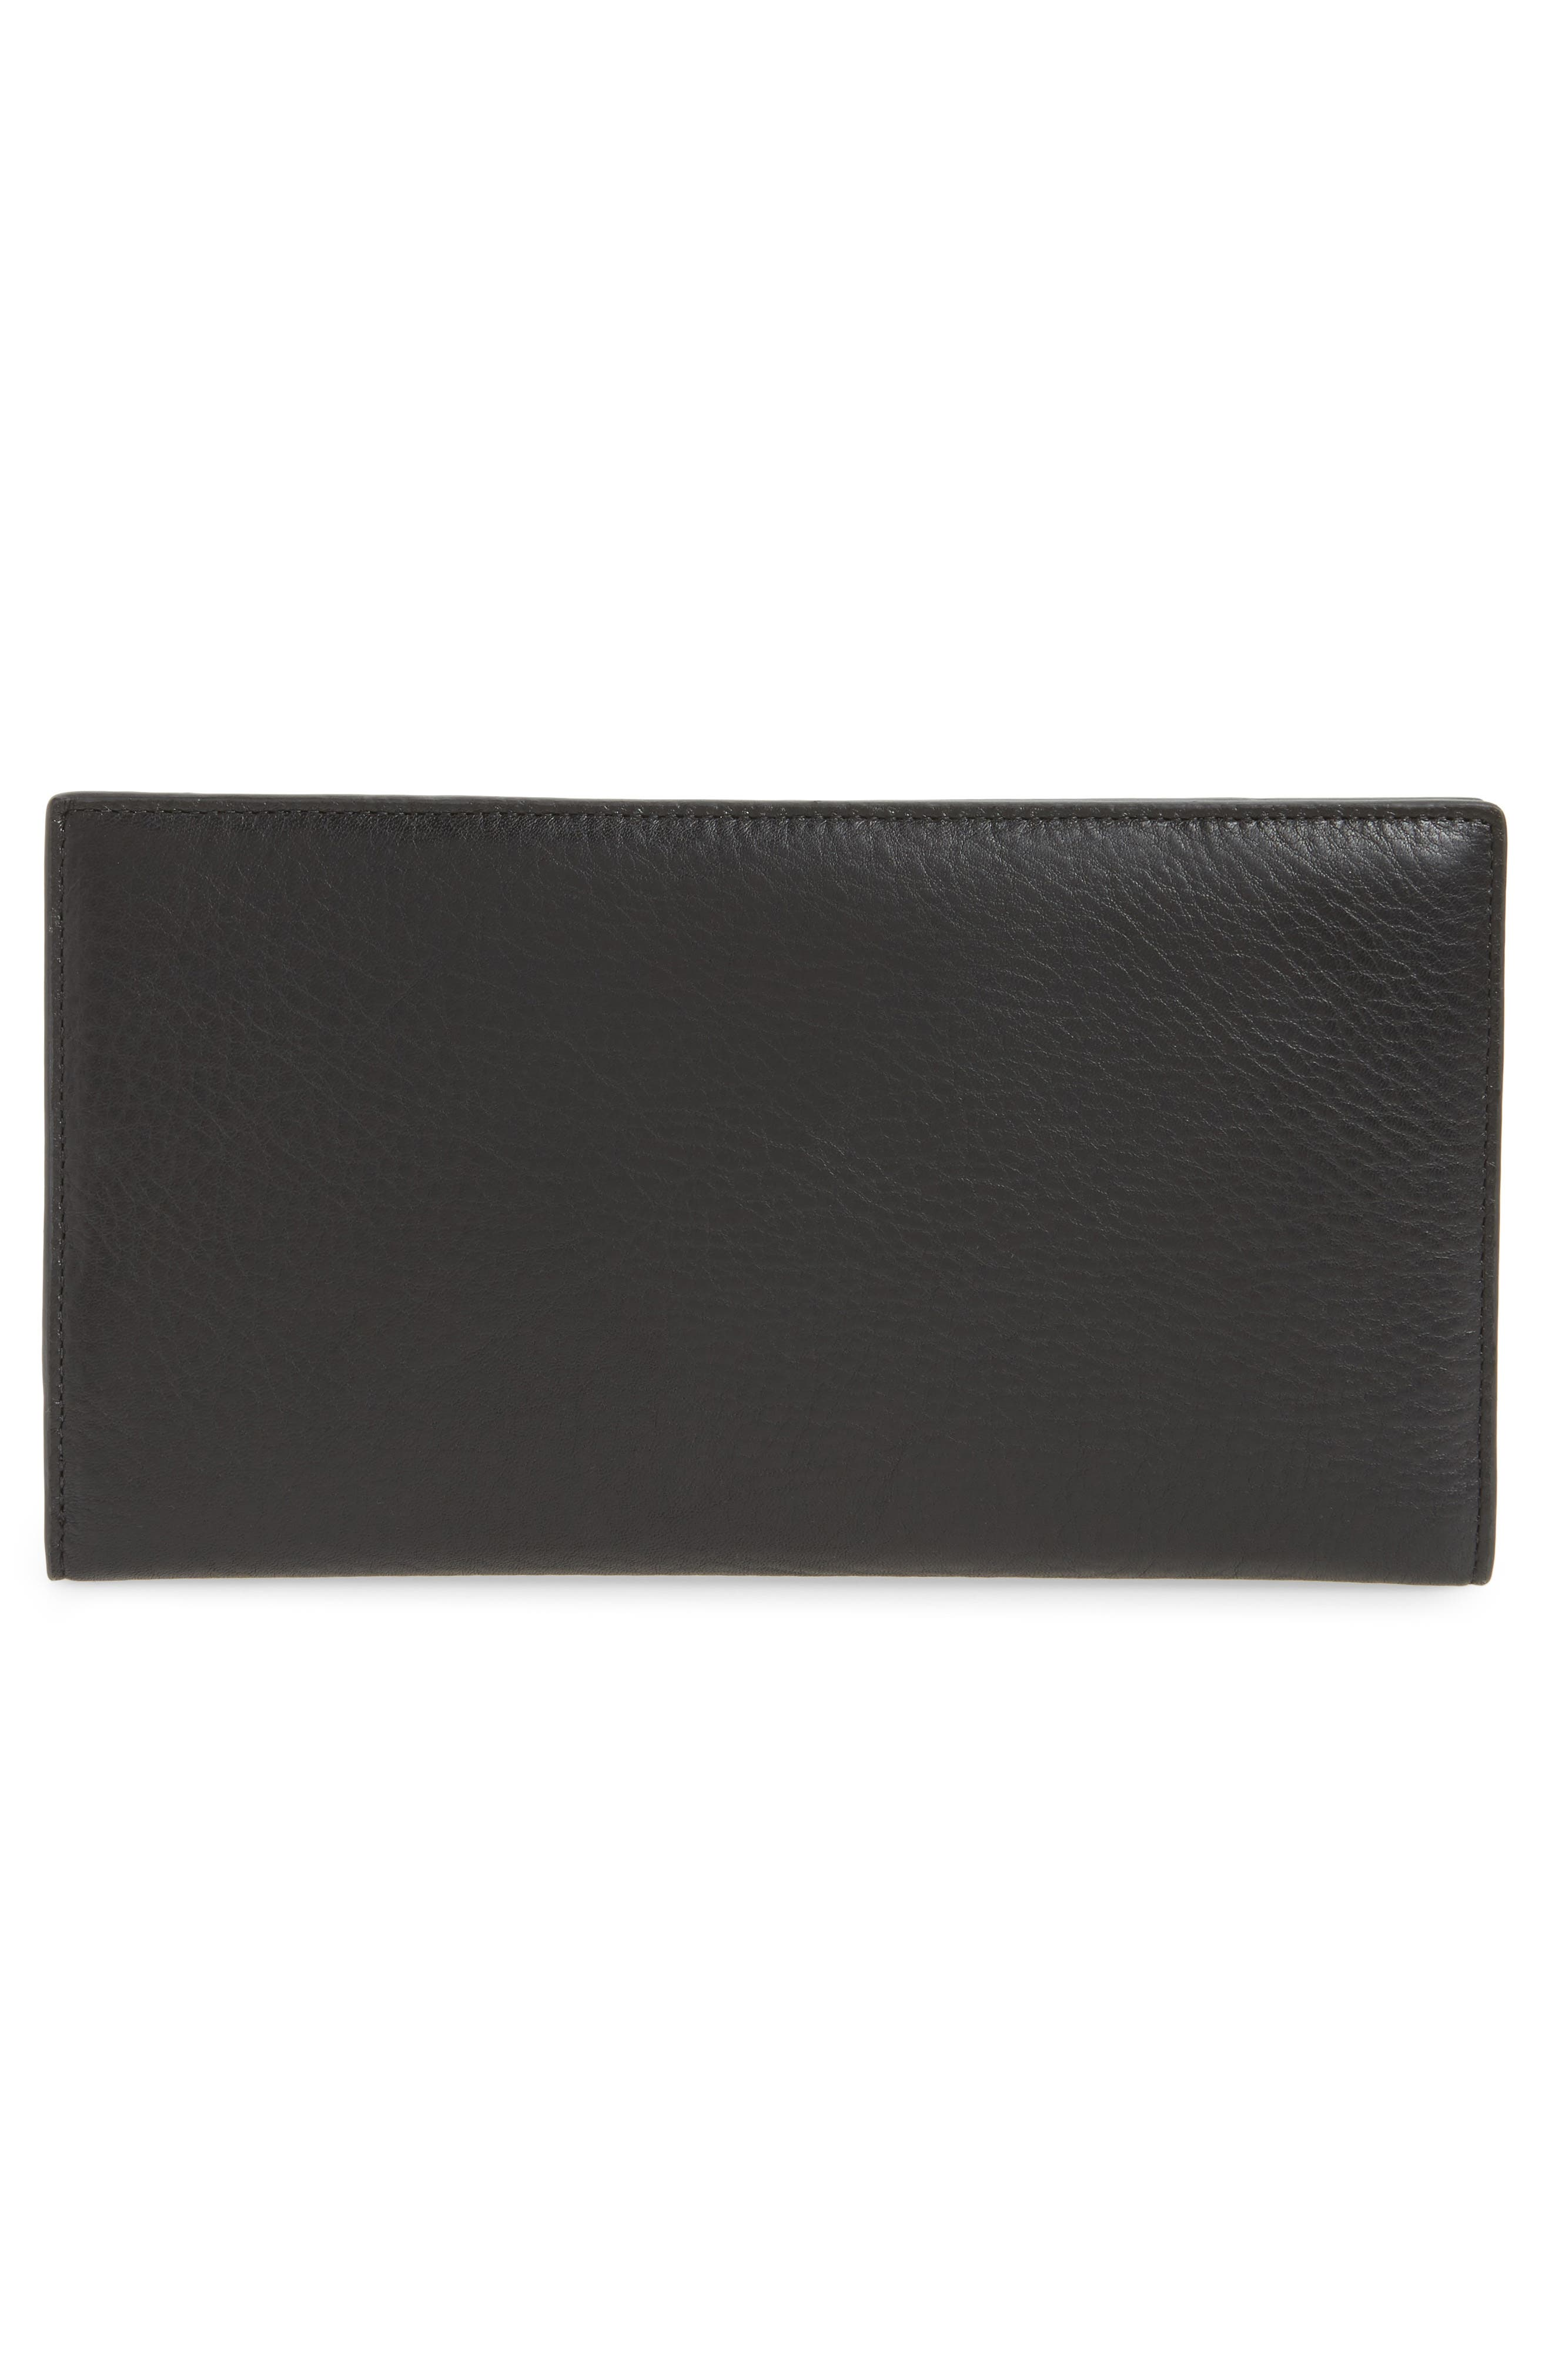 Dolle Leather Travel Wallet,                             Alternate thumbnail 3, color,                             001